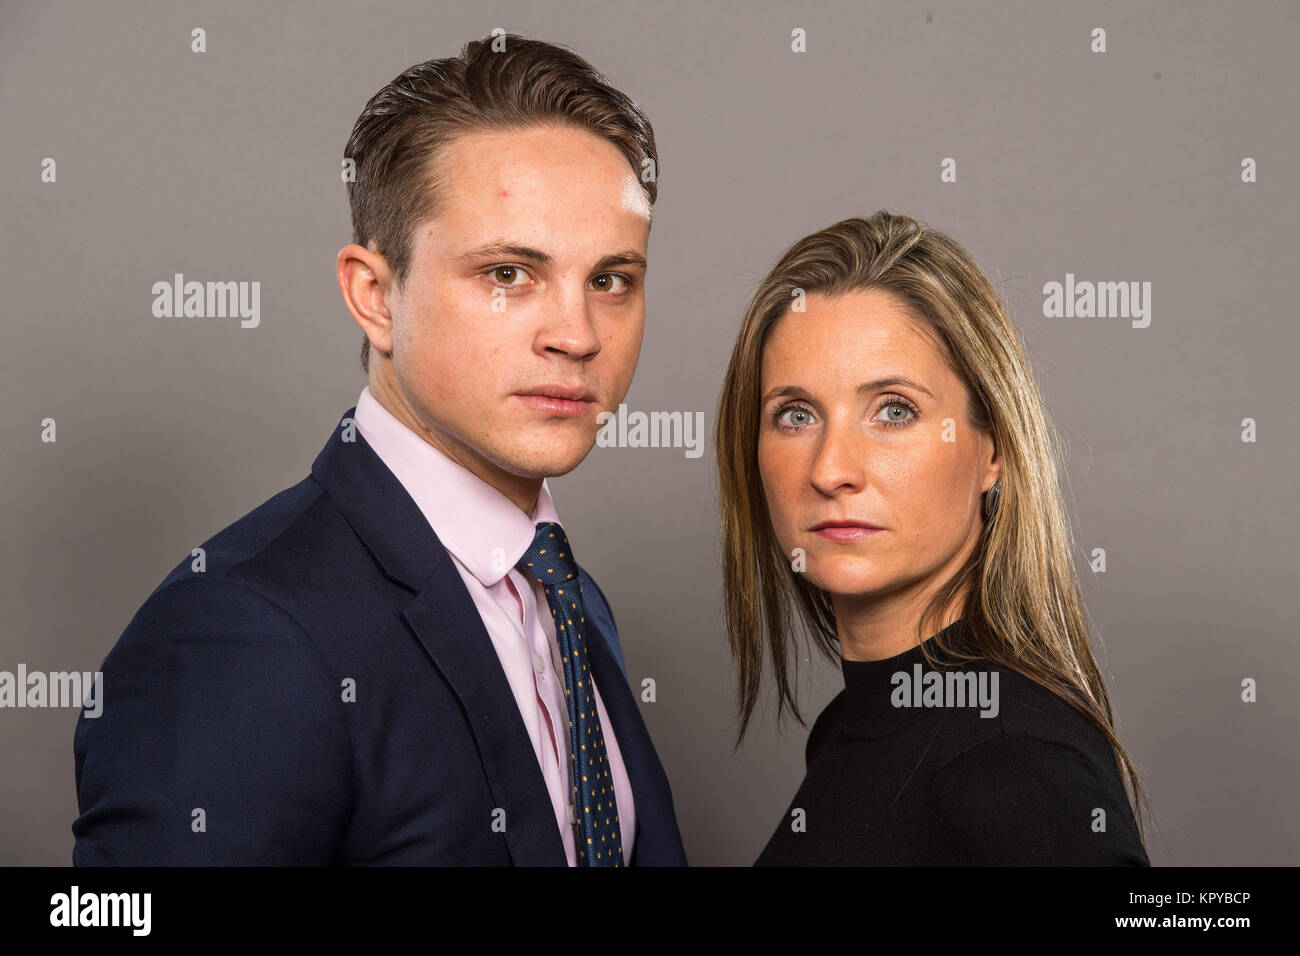 Who Will Fight For Stock Photos Images Andrew Smith Red Denim Merah 32 The Apprentice Finalists James White And Sarah Lynn It Out To Win